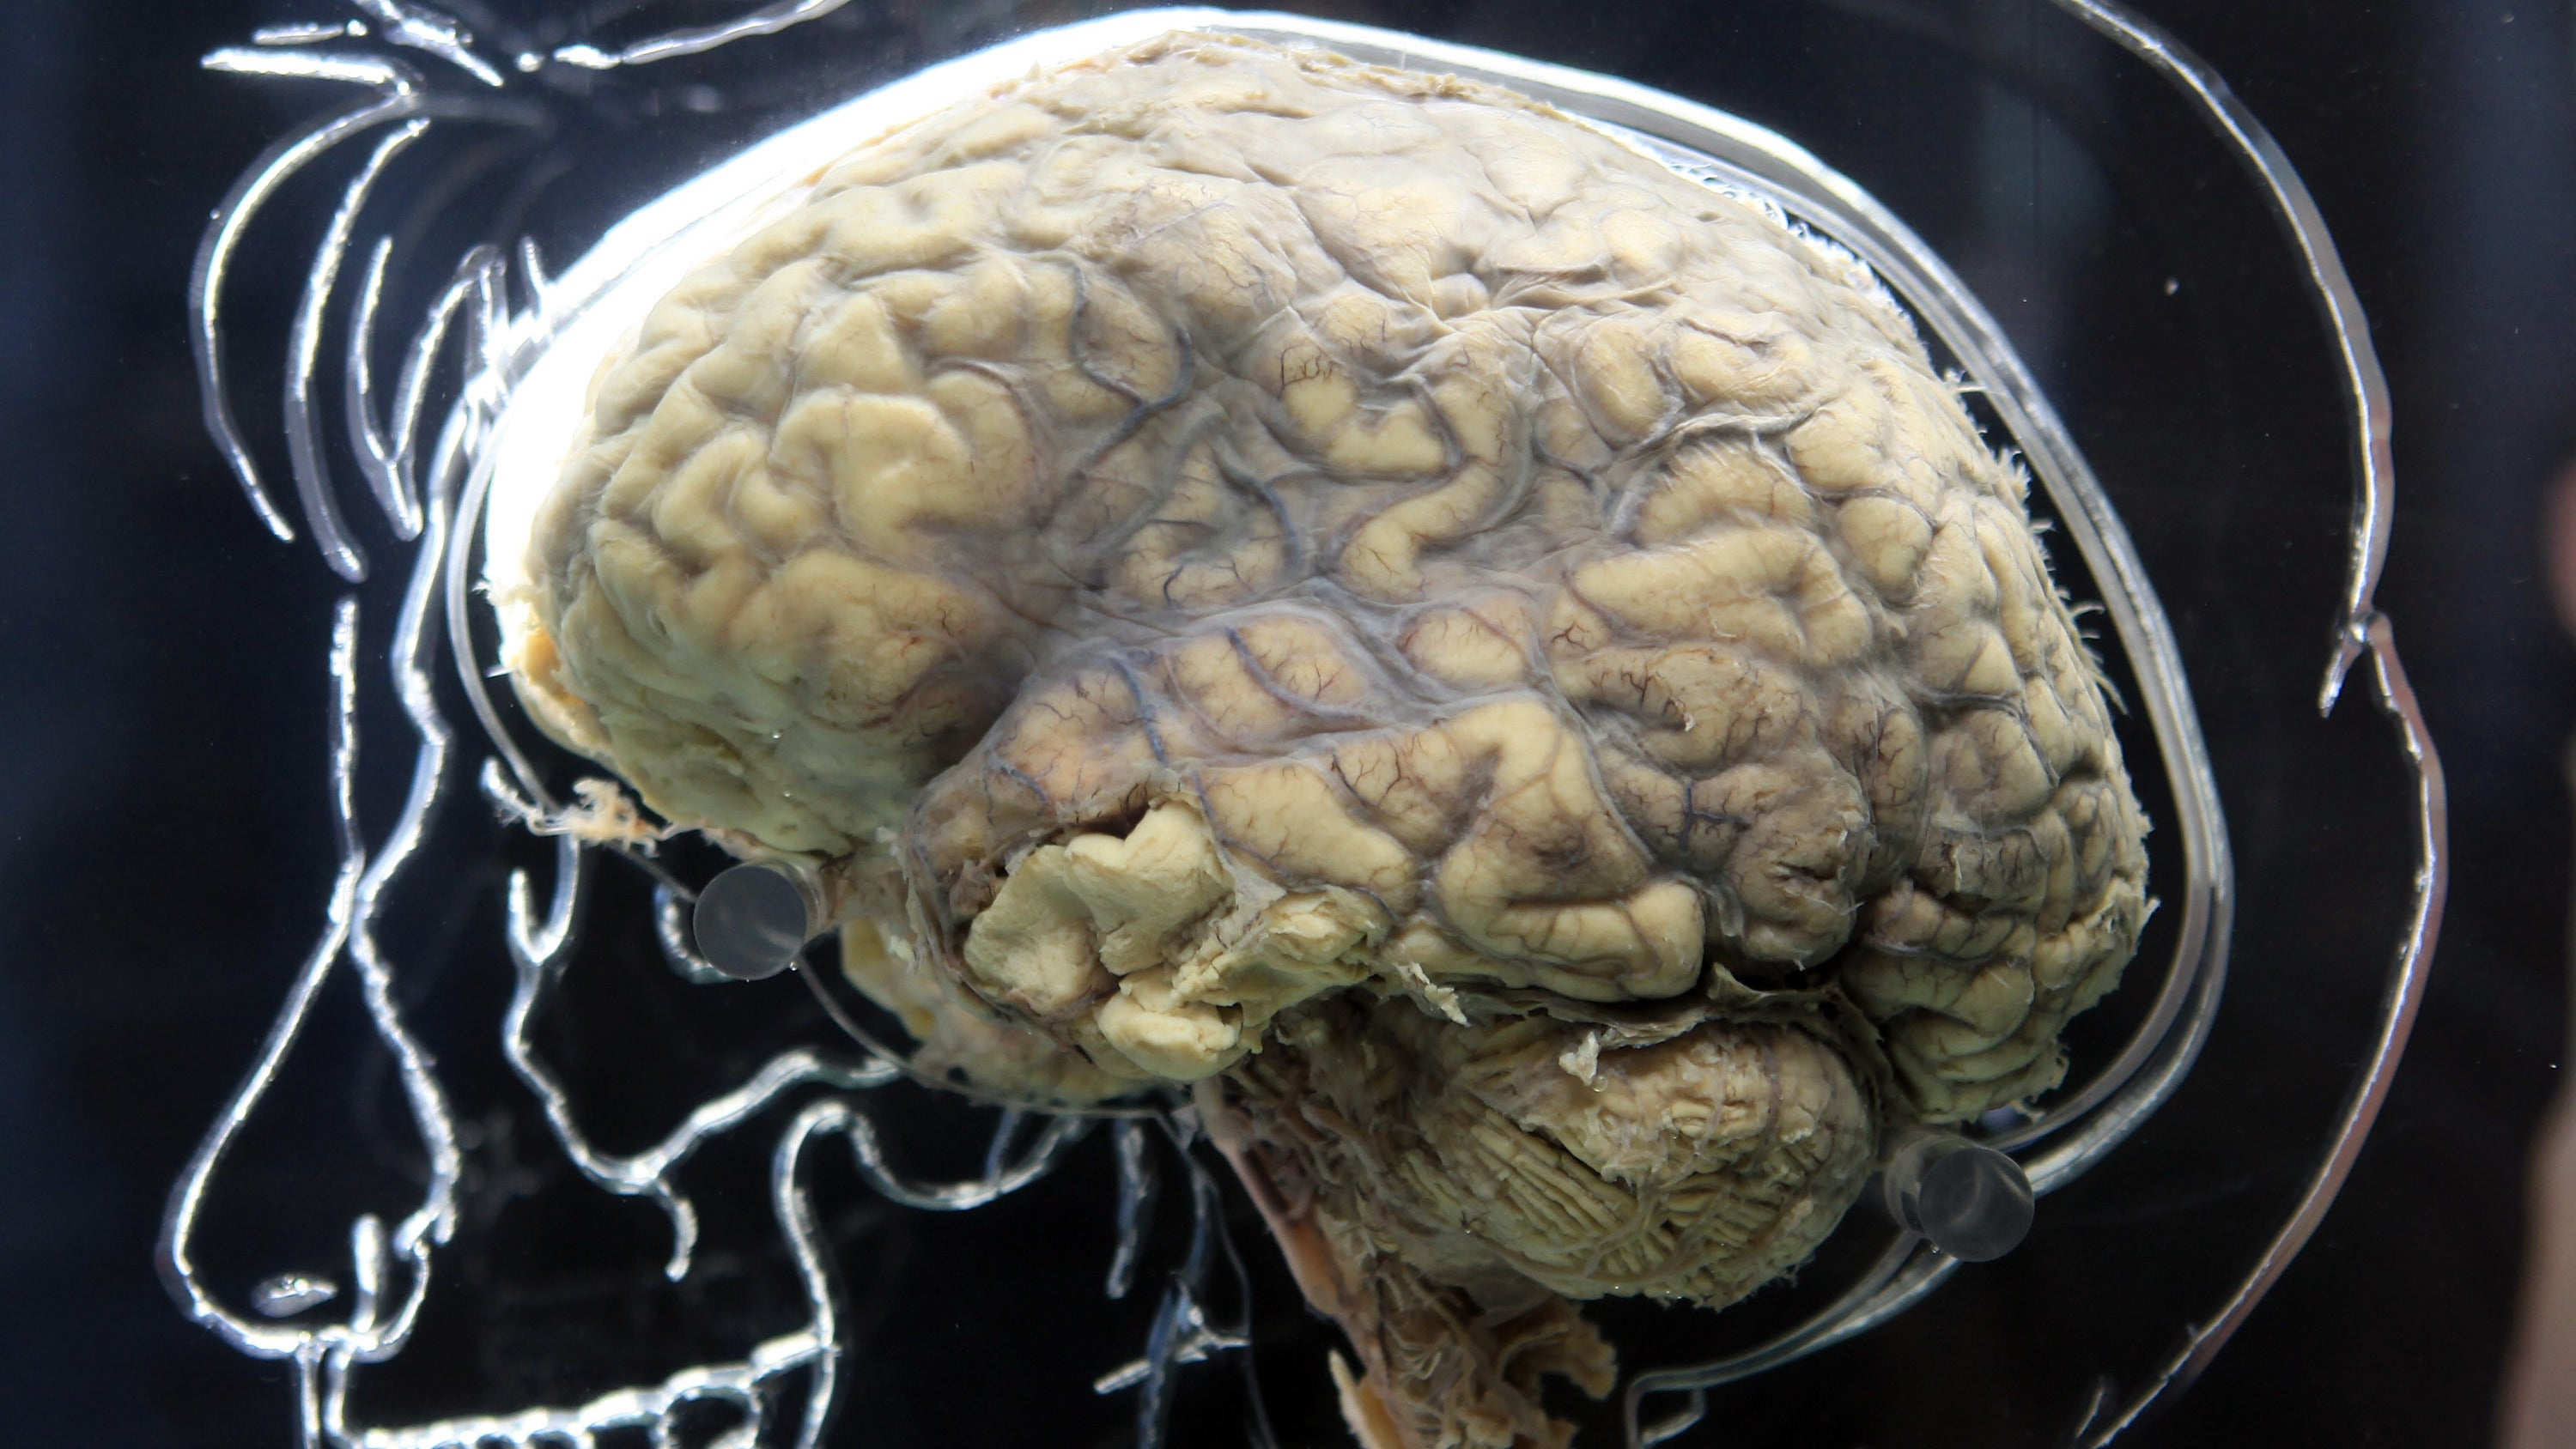 Scientists Have Mapped Out How Our Genes Might Lead To Mental Illness